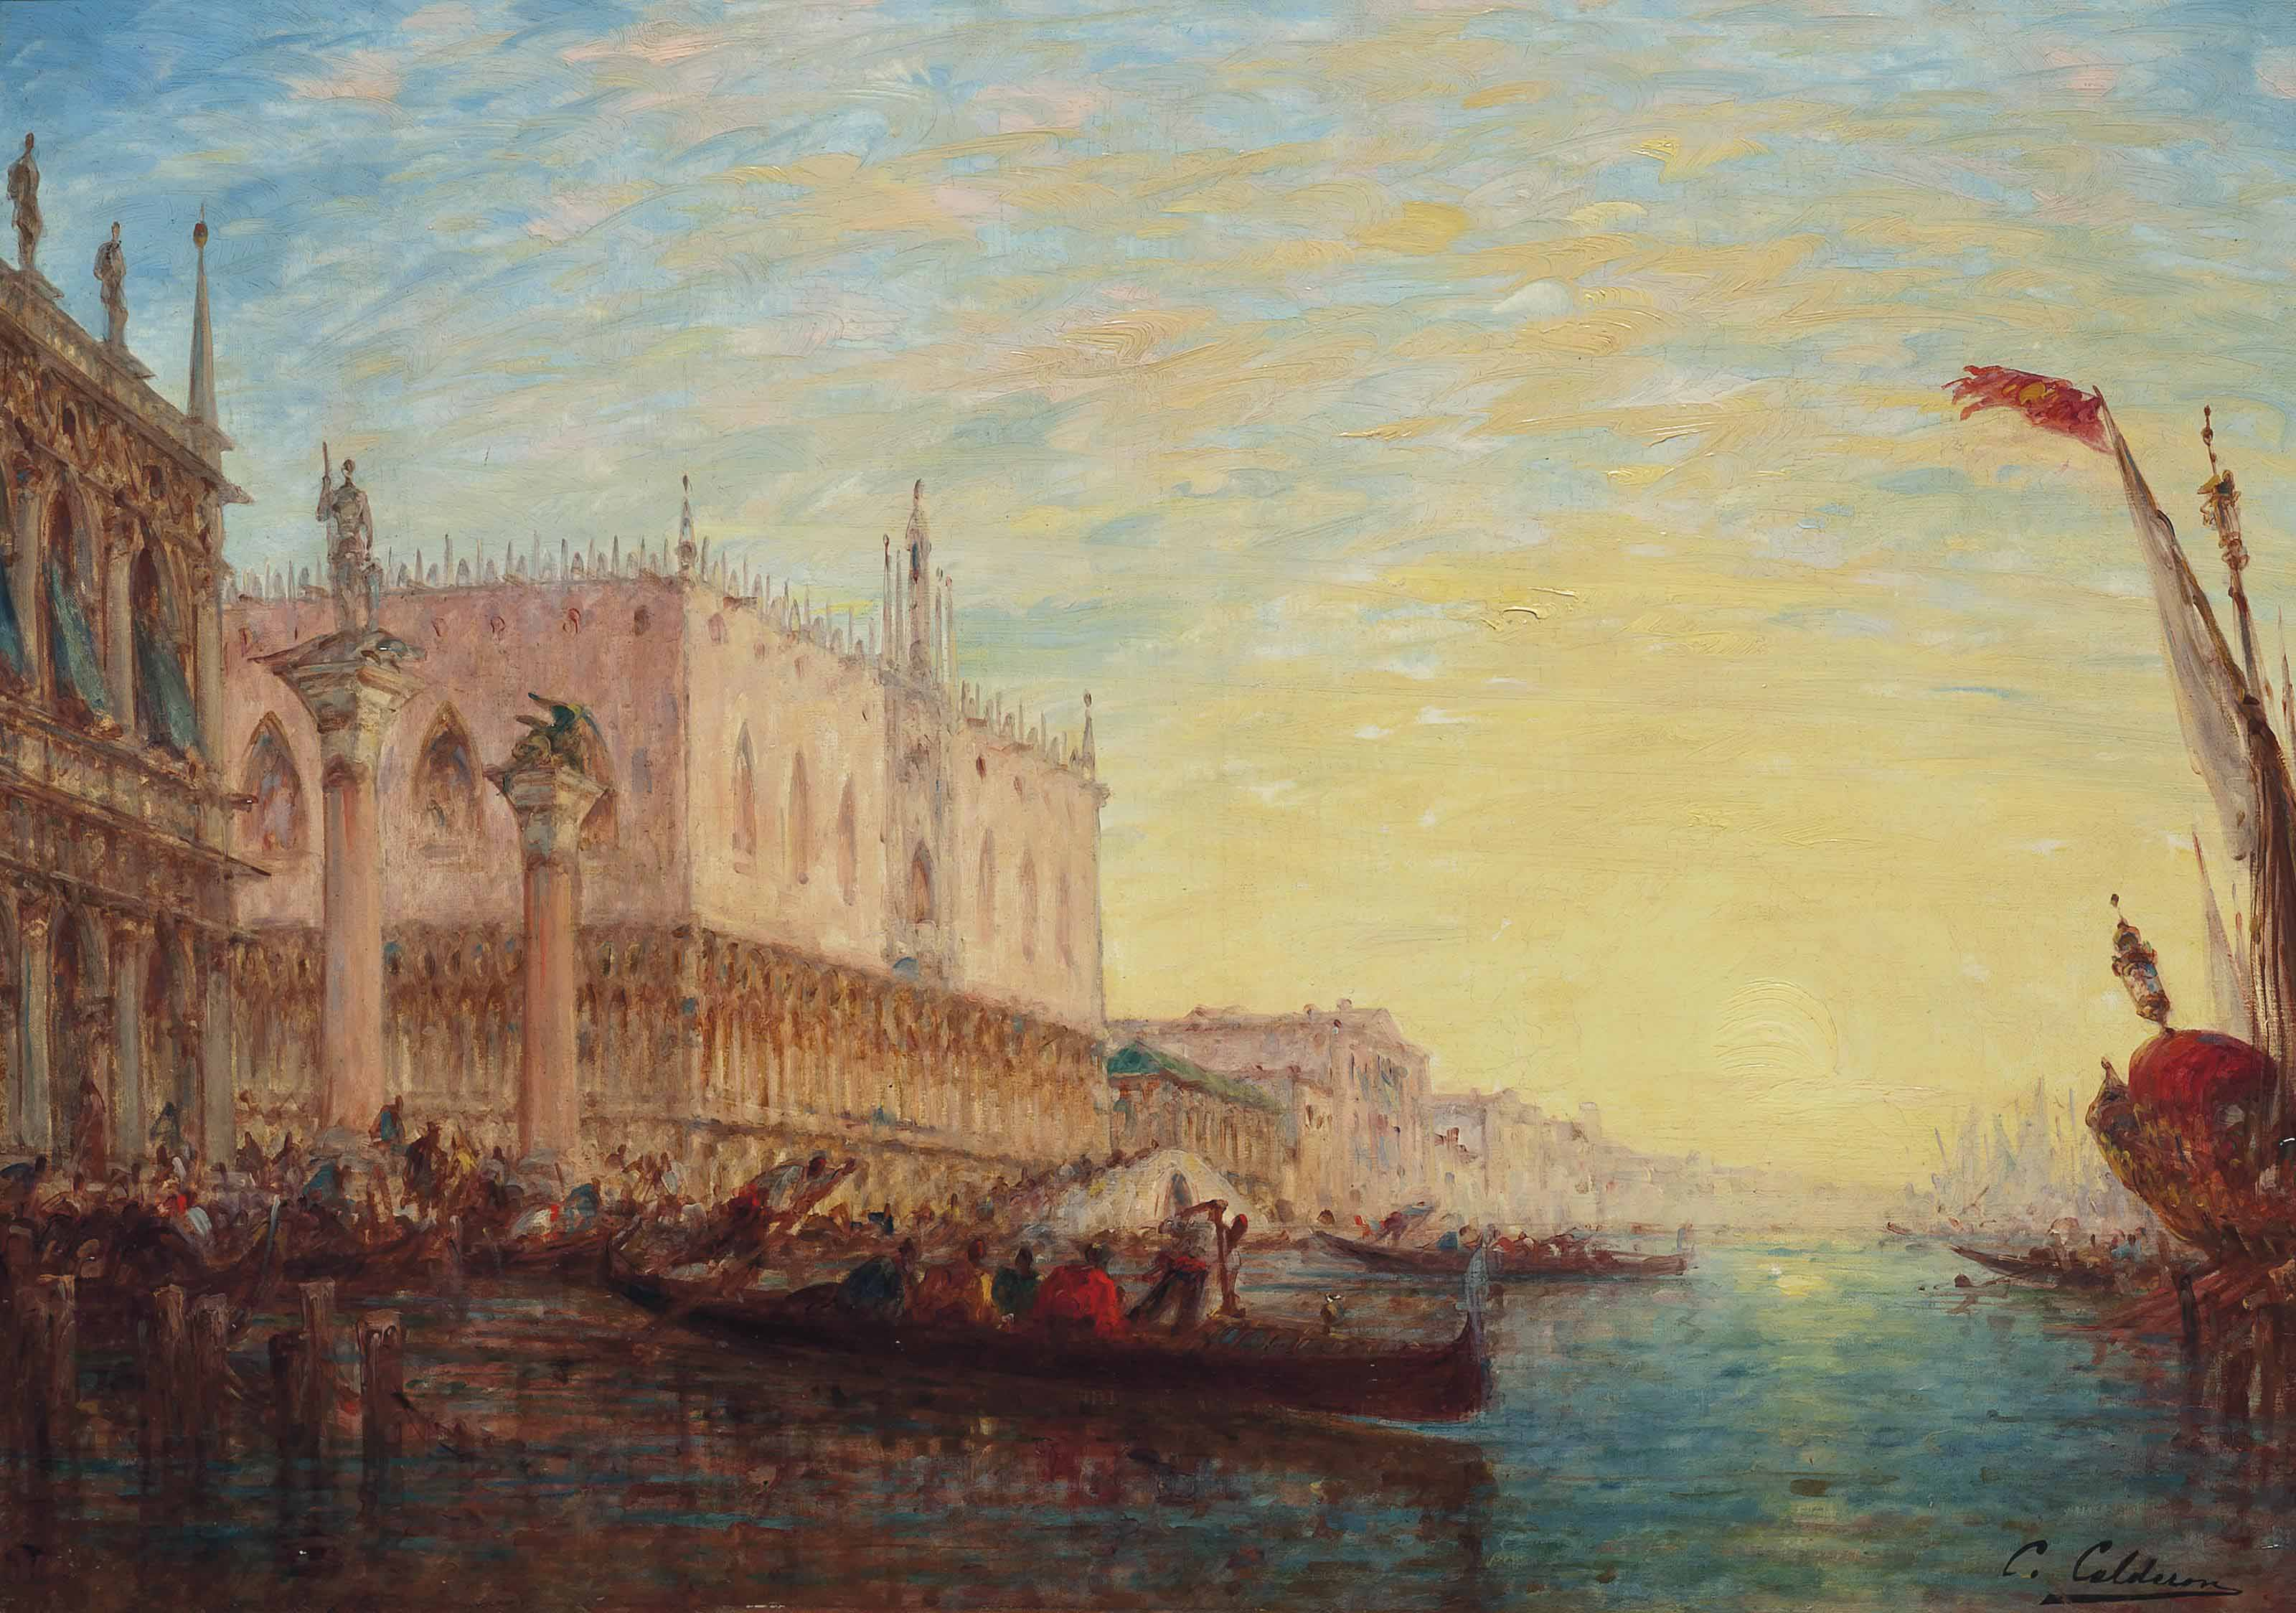 The Doge's Palace from the Grand Canal, Venice